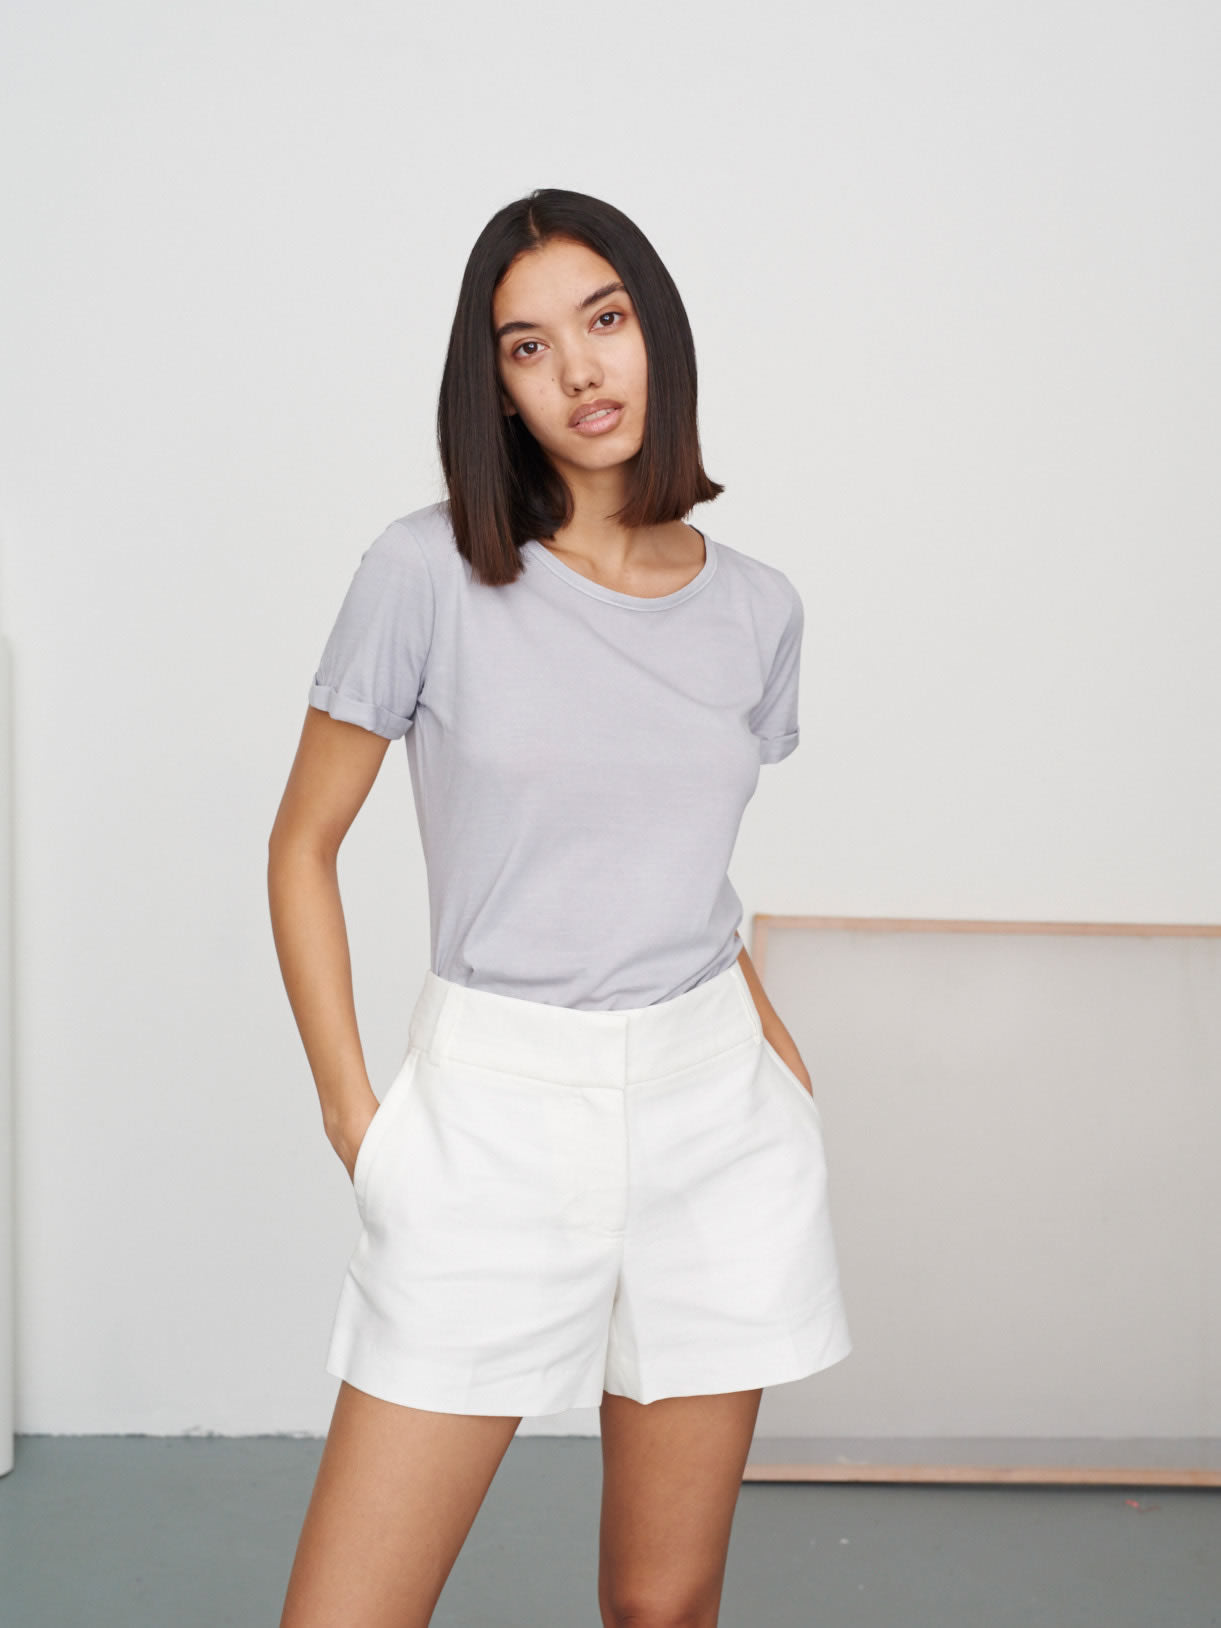 Women's Classic Round Neck Tee Sharkskin Grey